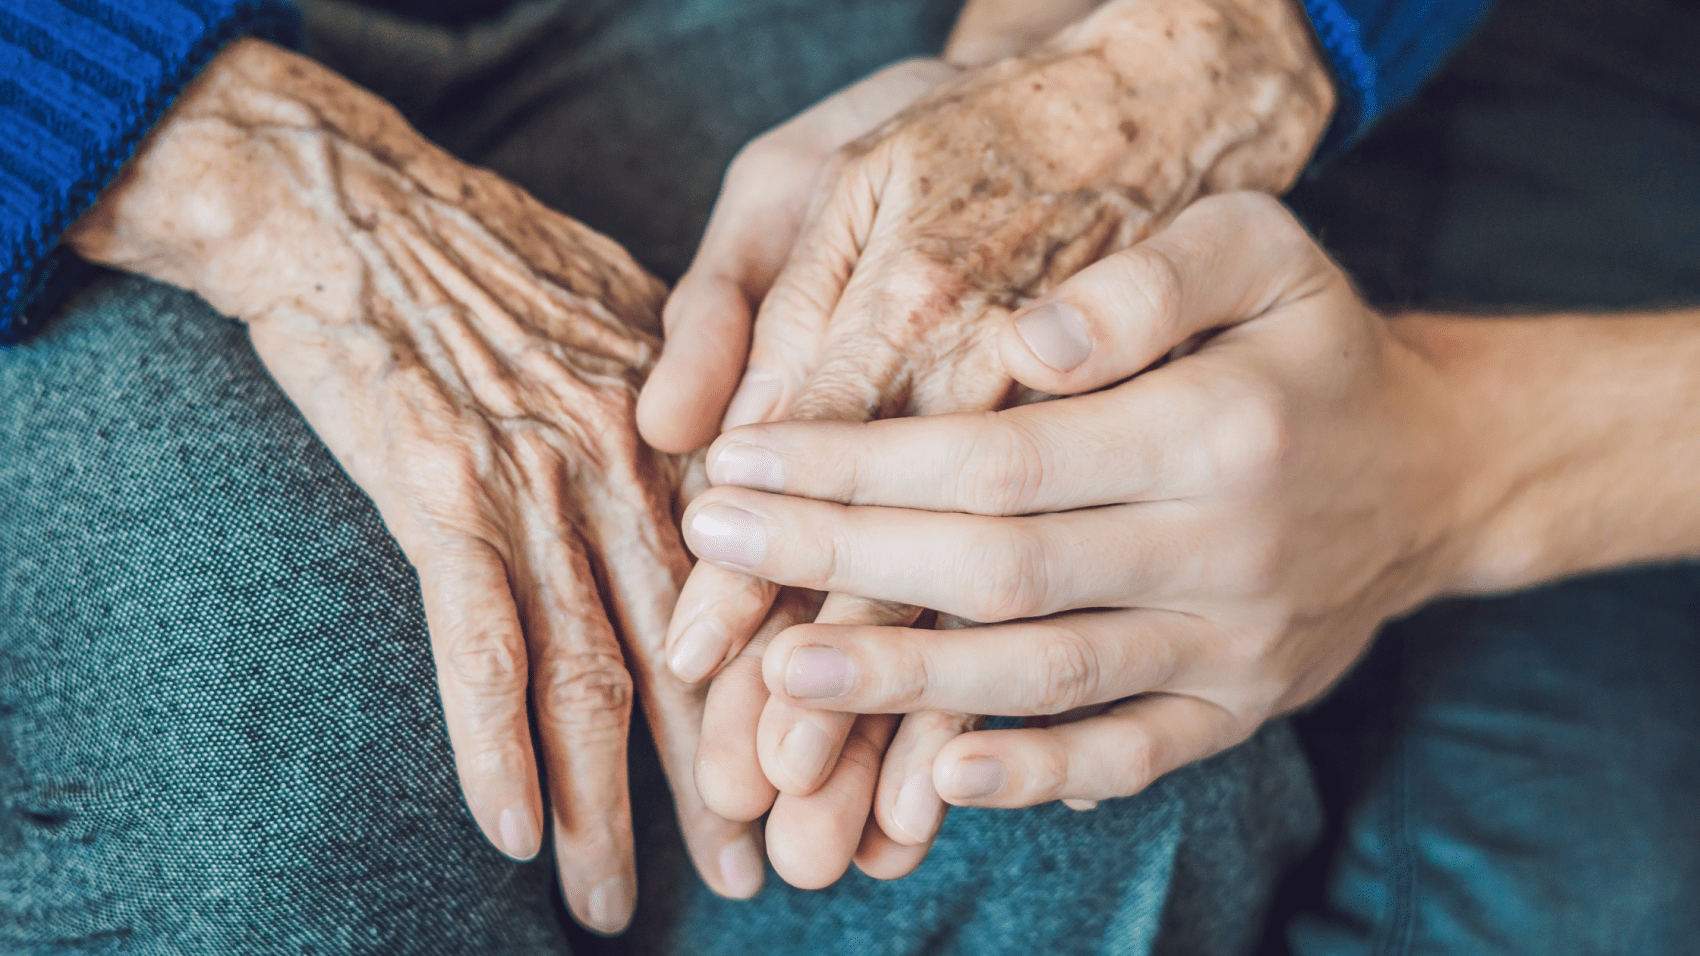 What Services Are Available Through Hospice?